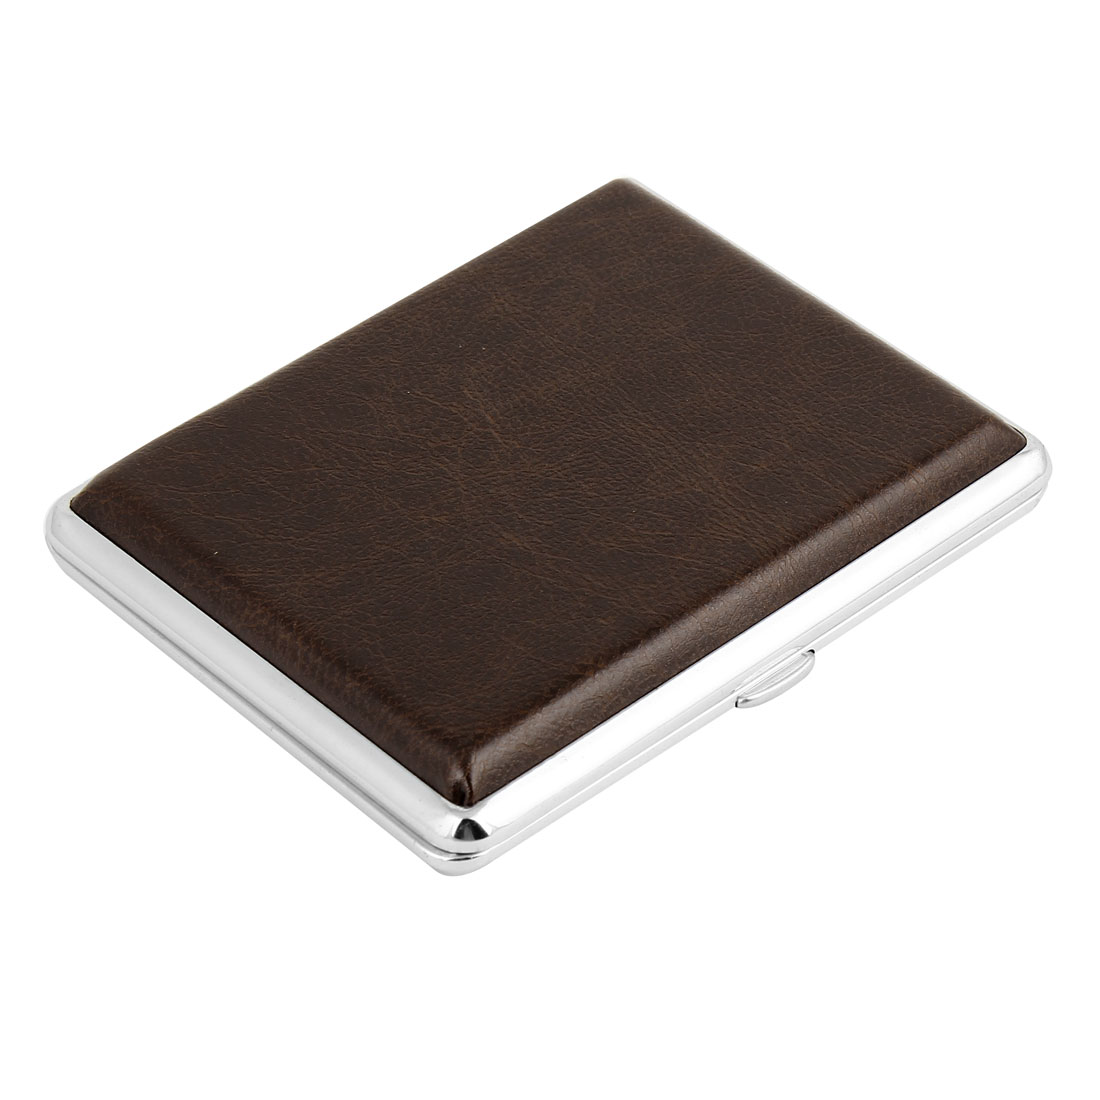 Brown Faux Leather Square Shape 18 Cigarette Capacity Case Box Holder